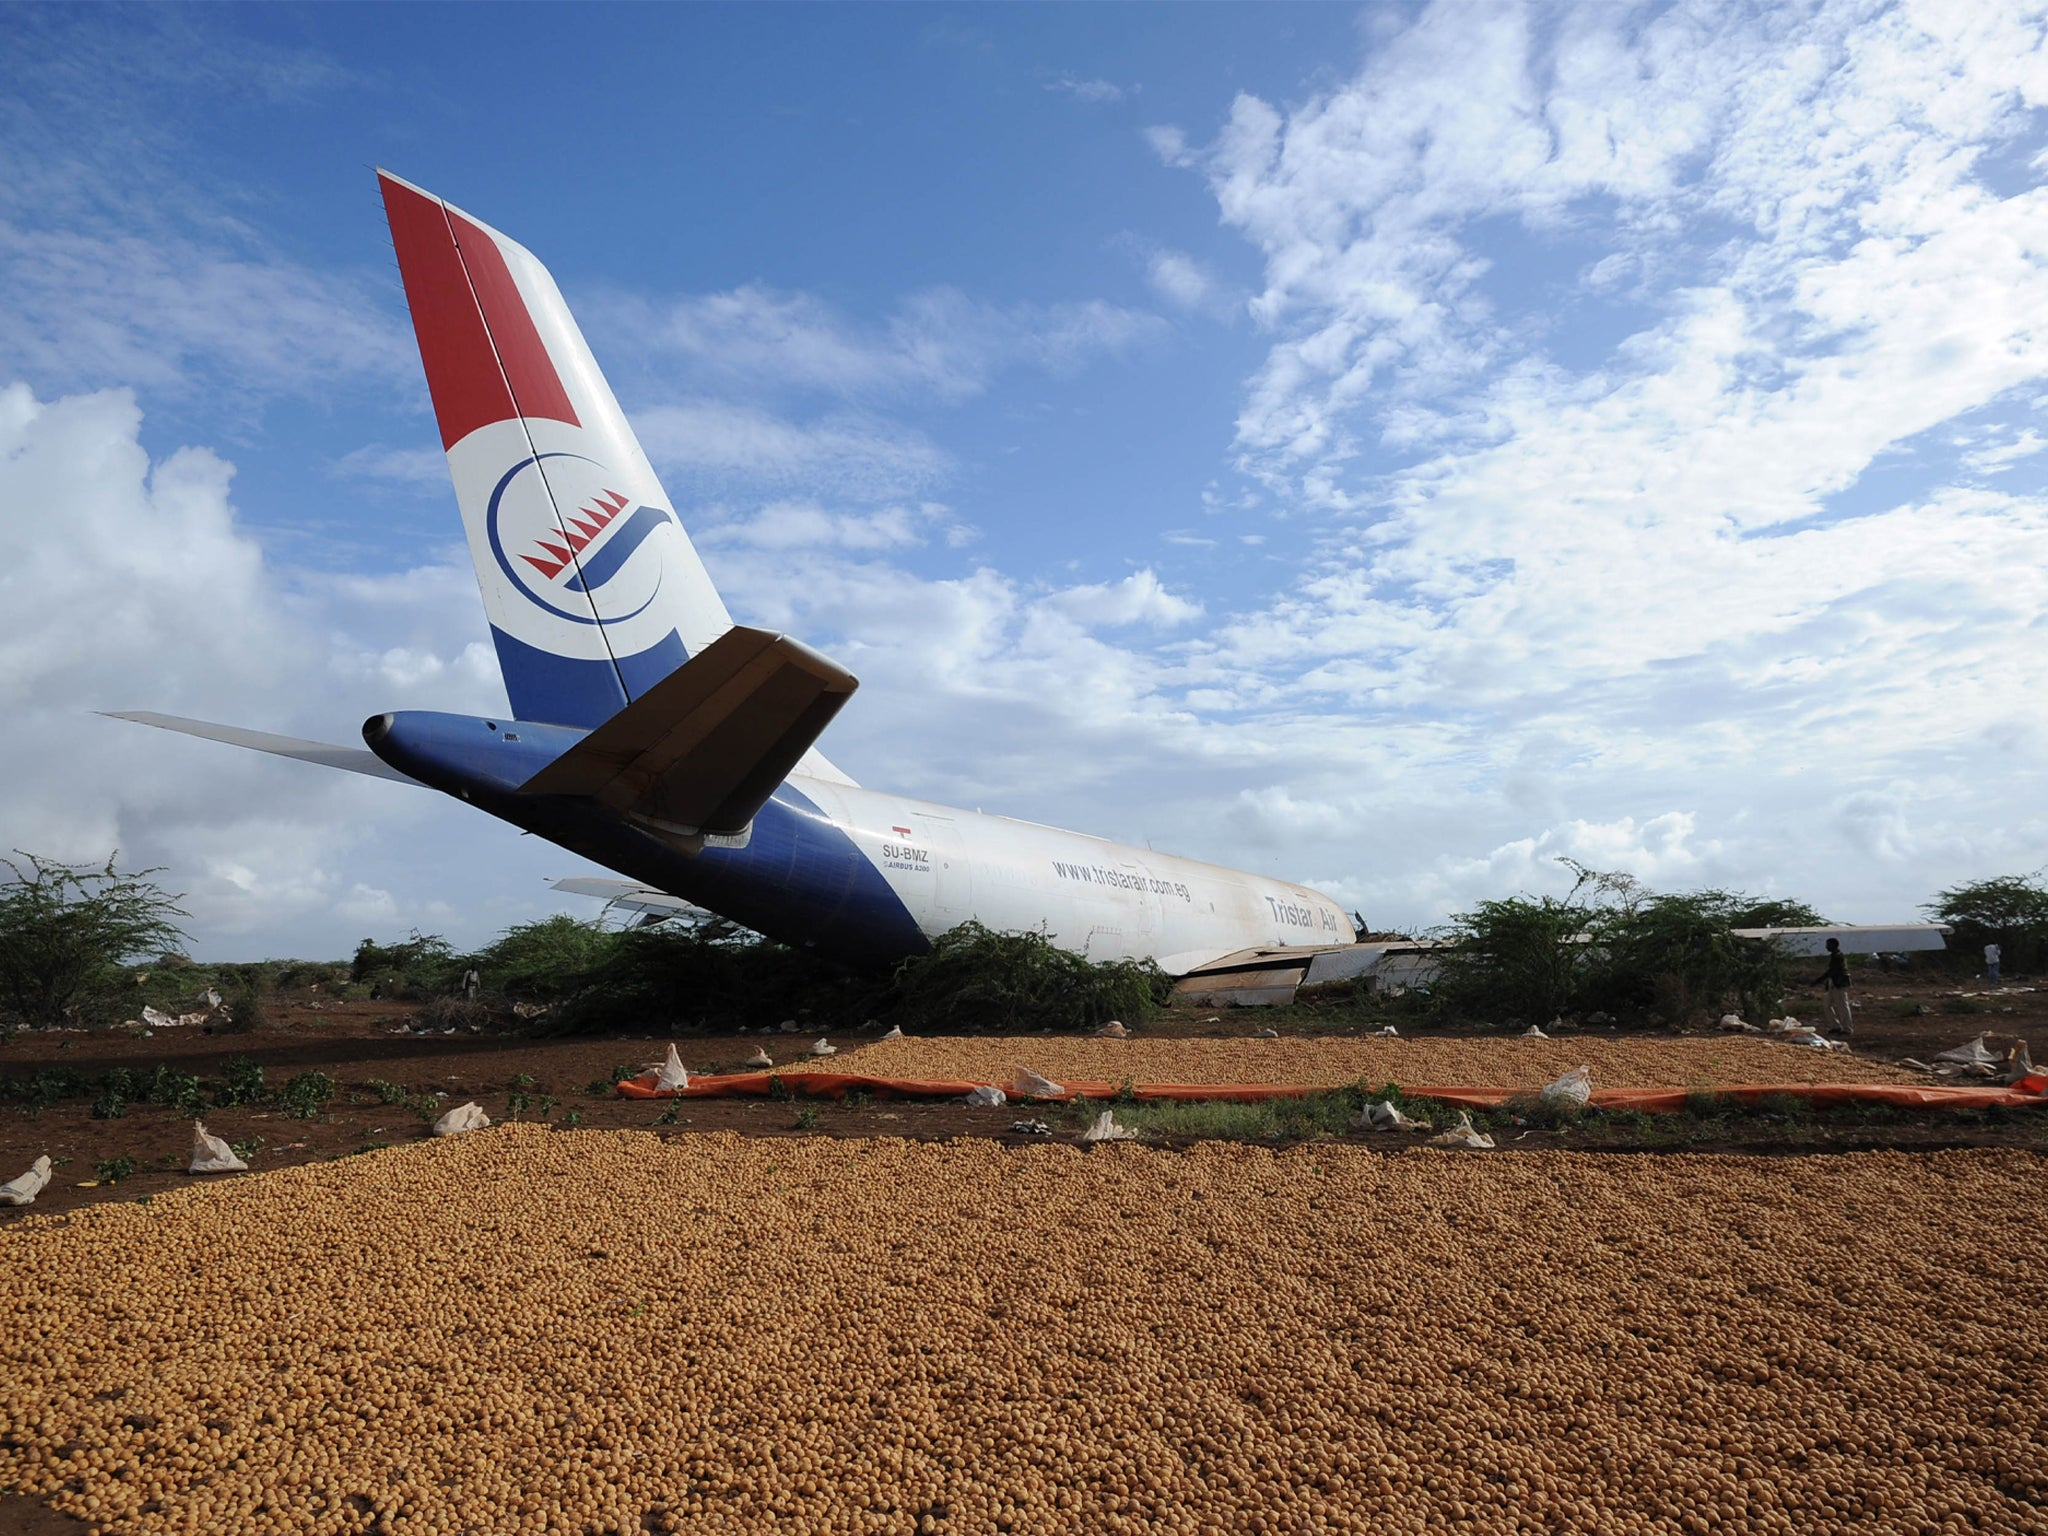 Three injured as cargo plane crashes at airport in Somalia's capital - independent